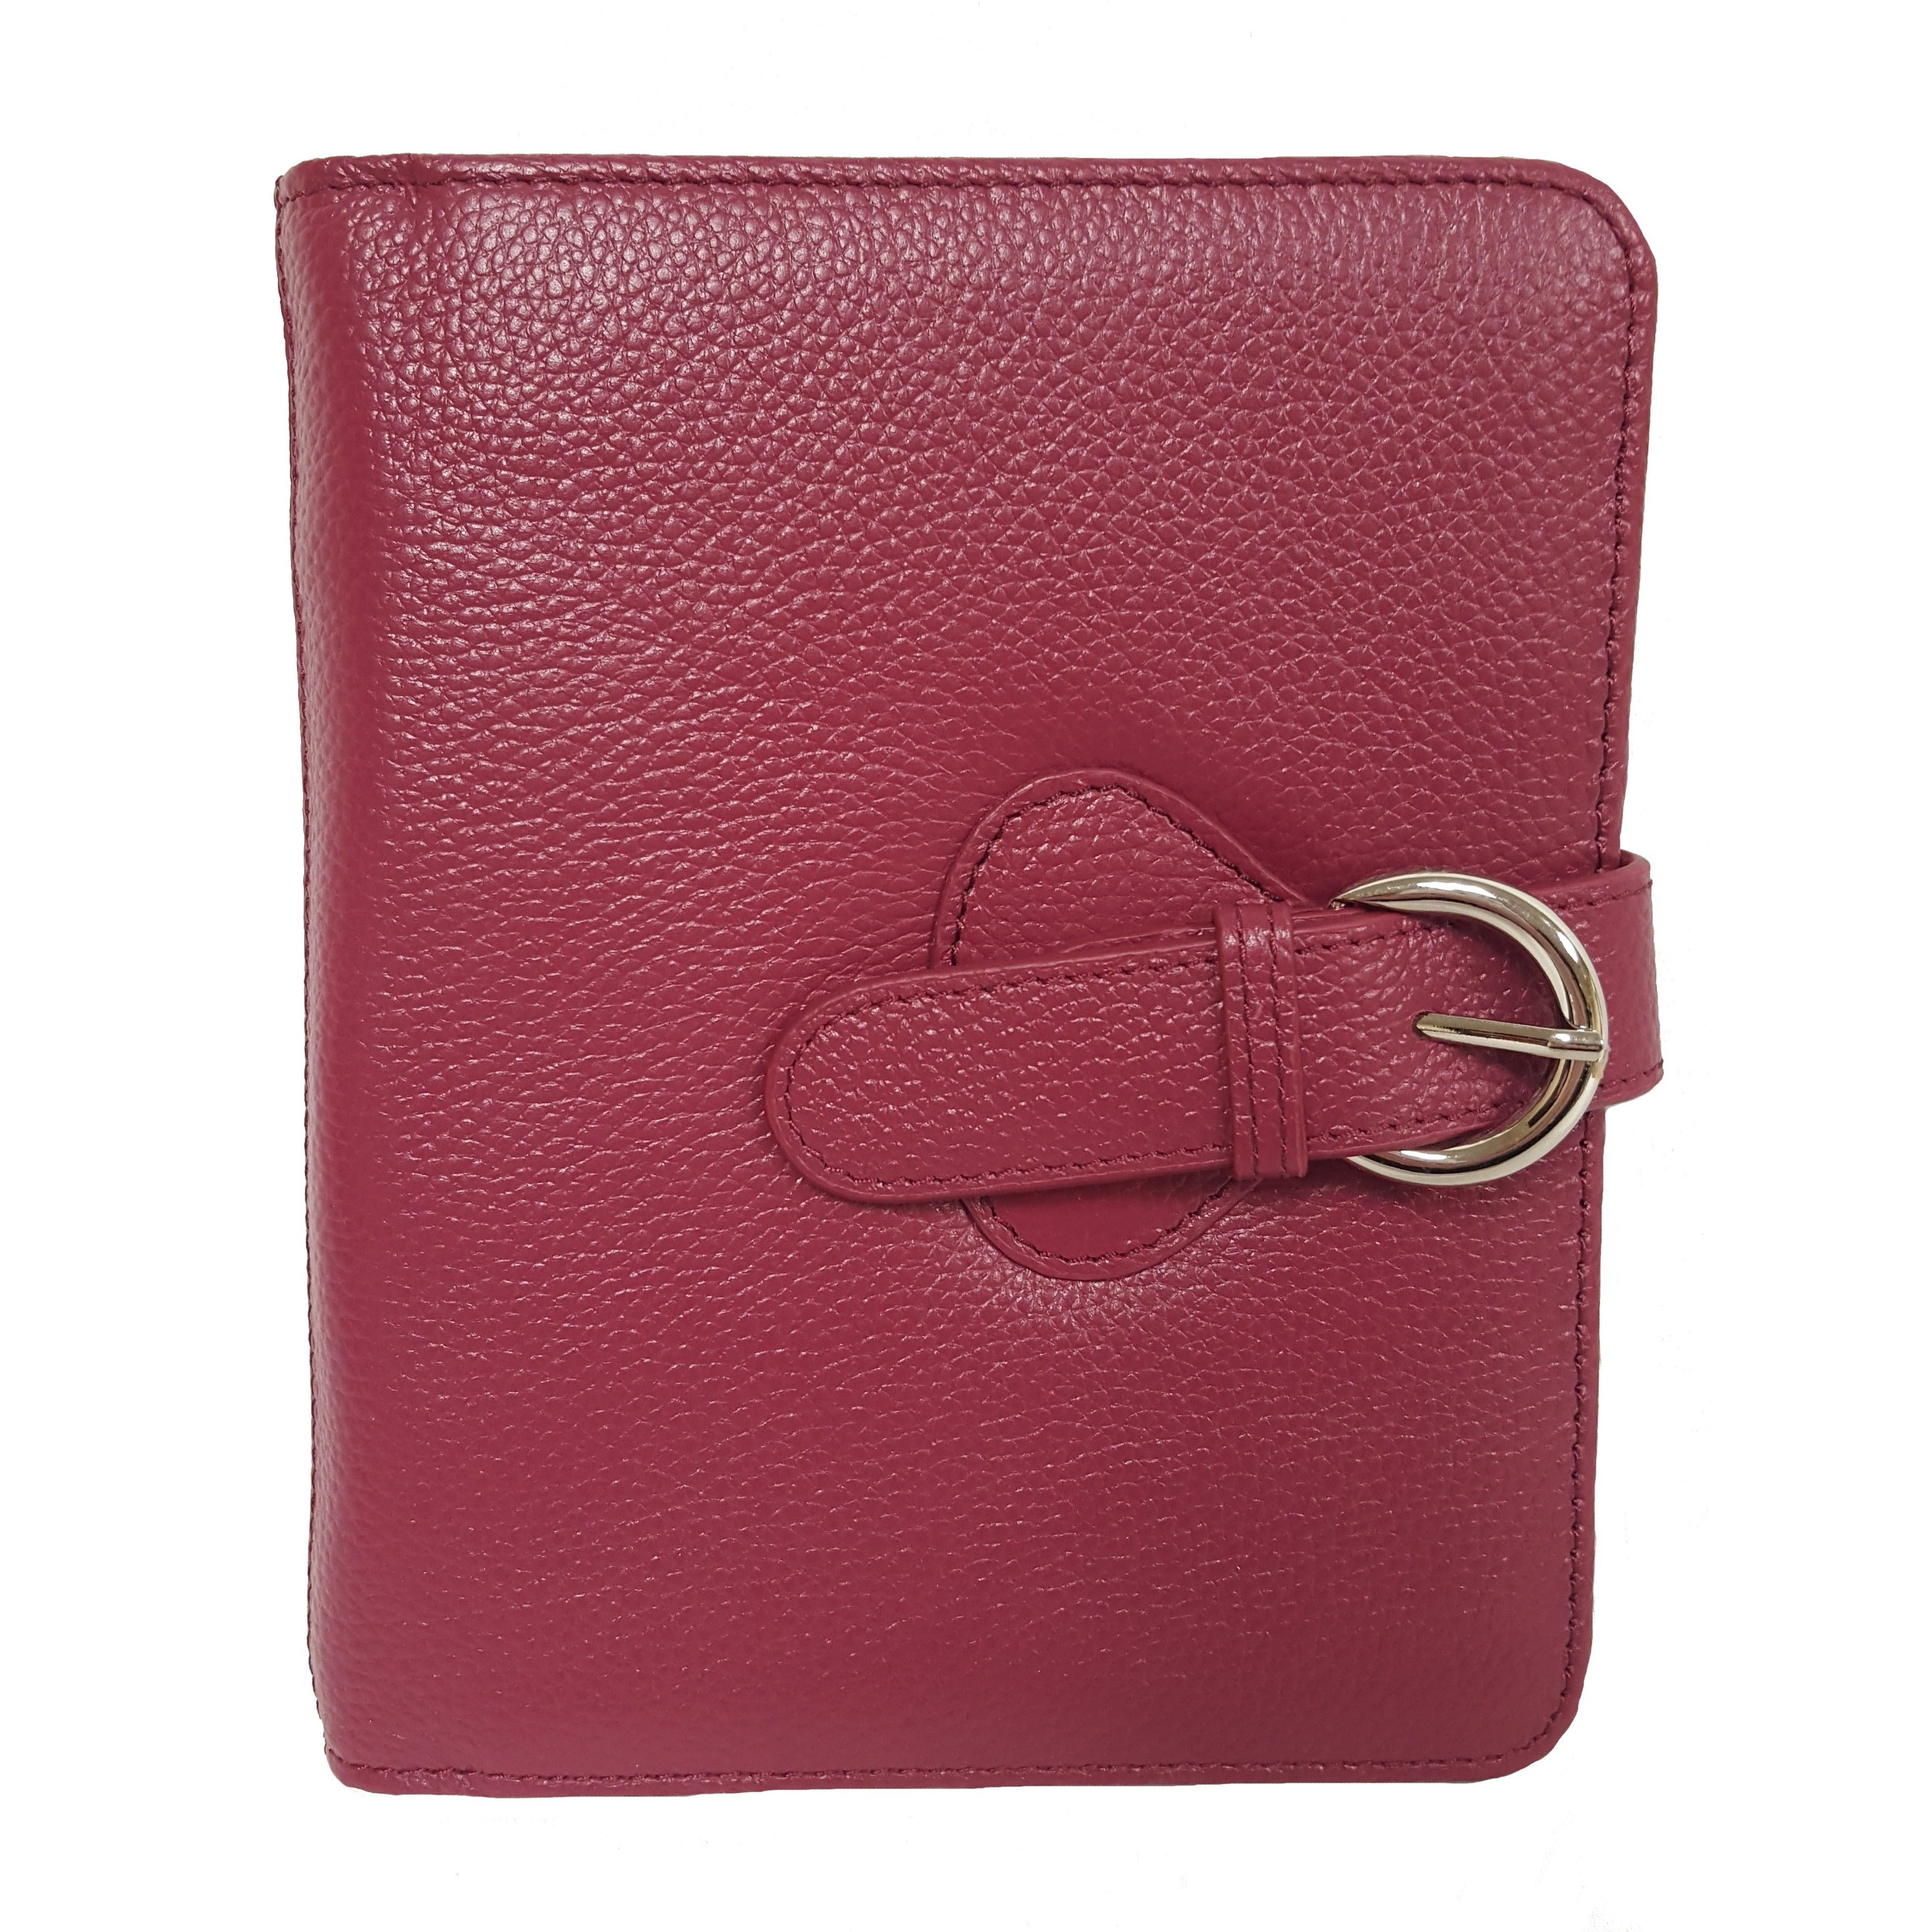 SEAICH Franklin Covey Ava Leather Compact Binder Plum